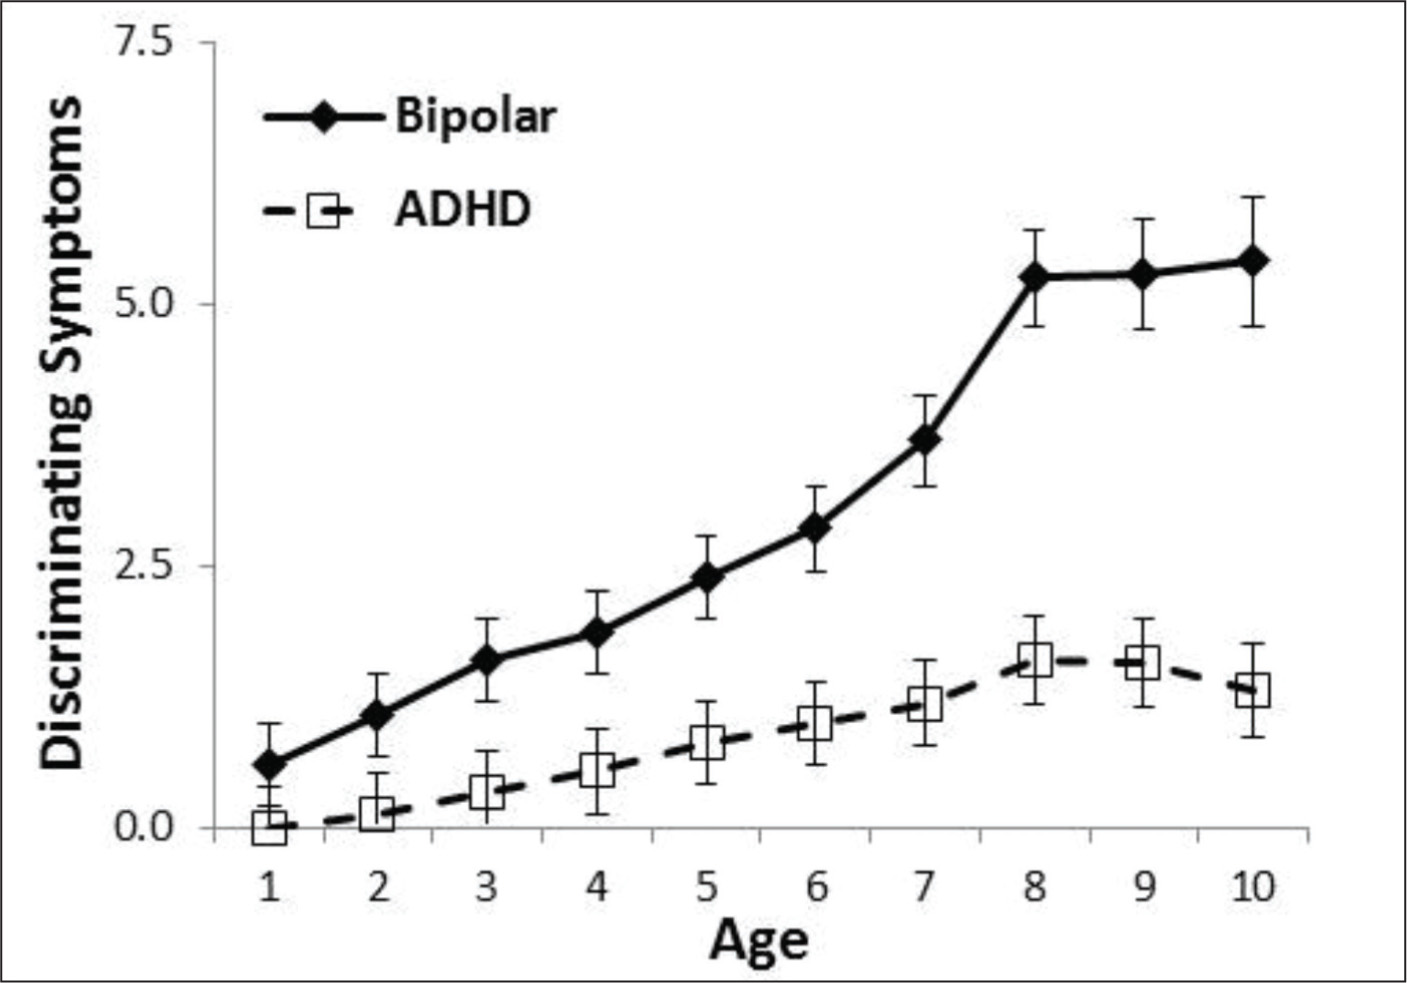 More rapid onset and greater accumulation of the 12 differentiating symptoms: brief and extend elevated mood, irritability, decreased sleep, physical complaints, change in appetite, night terrors, bed wetting, periods of sadness, inappropriate sexual behavior, suicidal thinking, and poor frustration tolerance, and differentiated prepubertal onset of bipolar disorder from attention-deficit/hyperactivity disorder (ADHD) in the first few years of life.